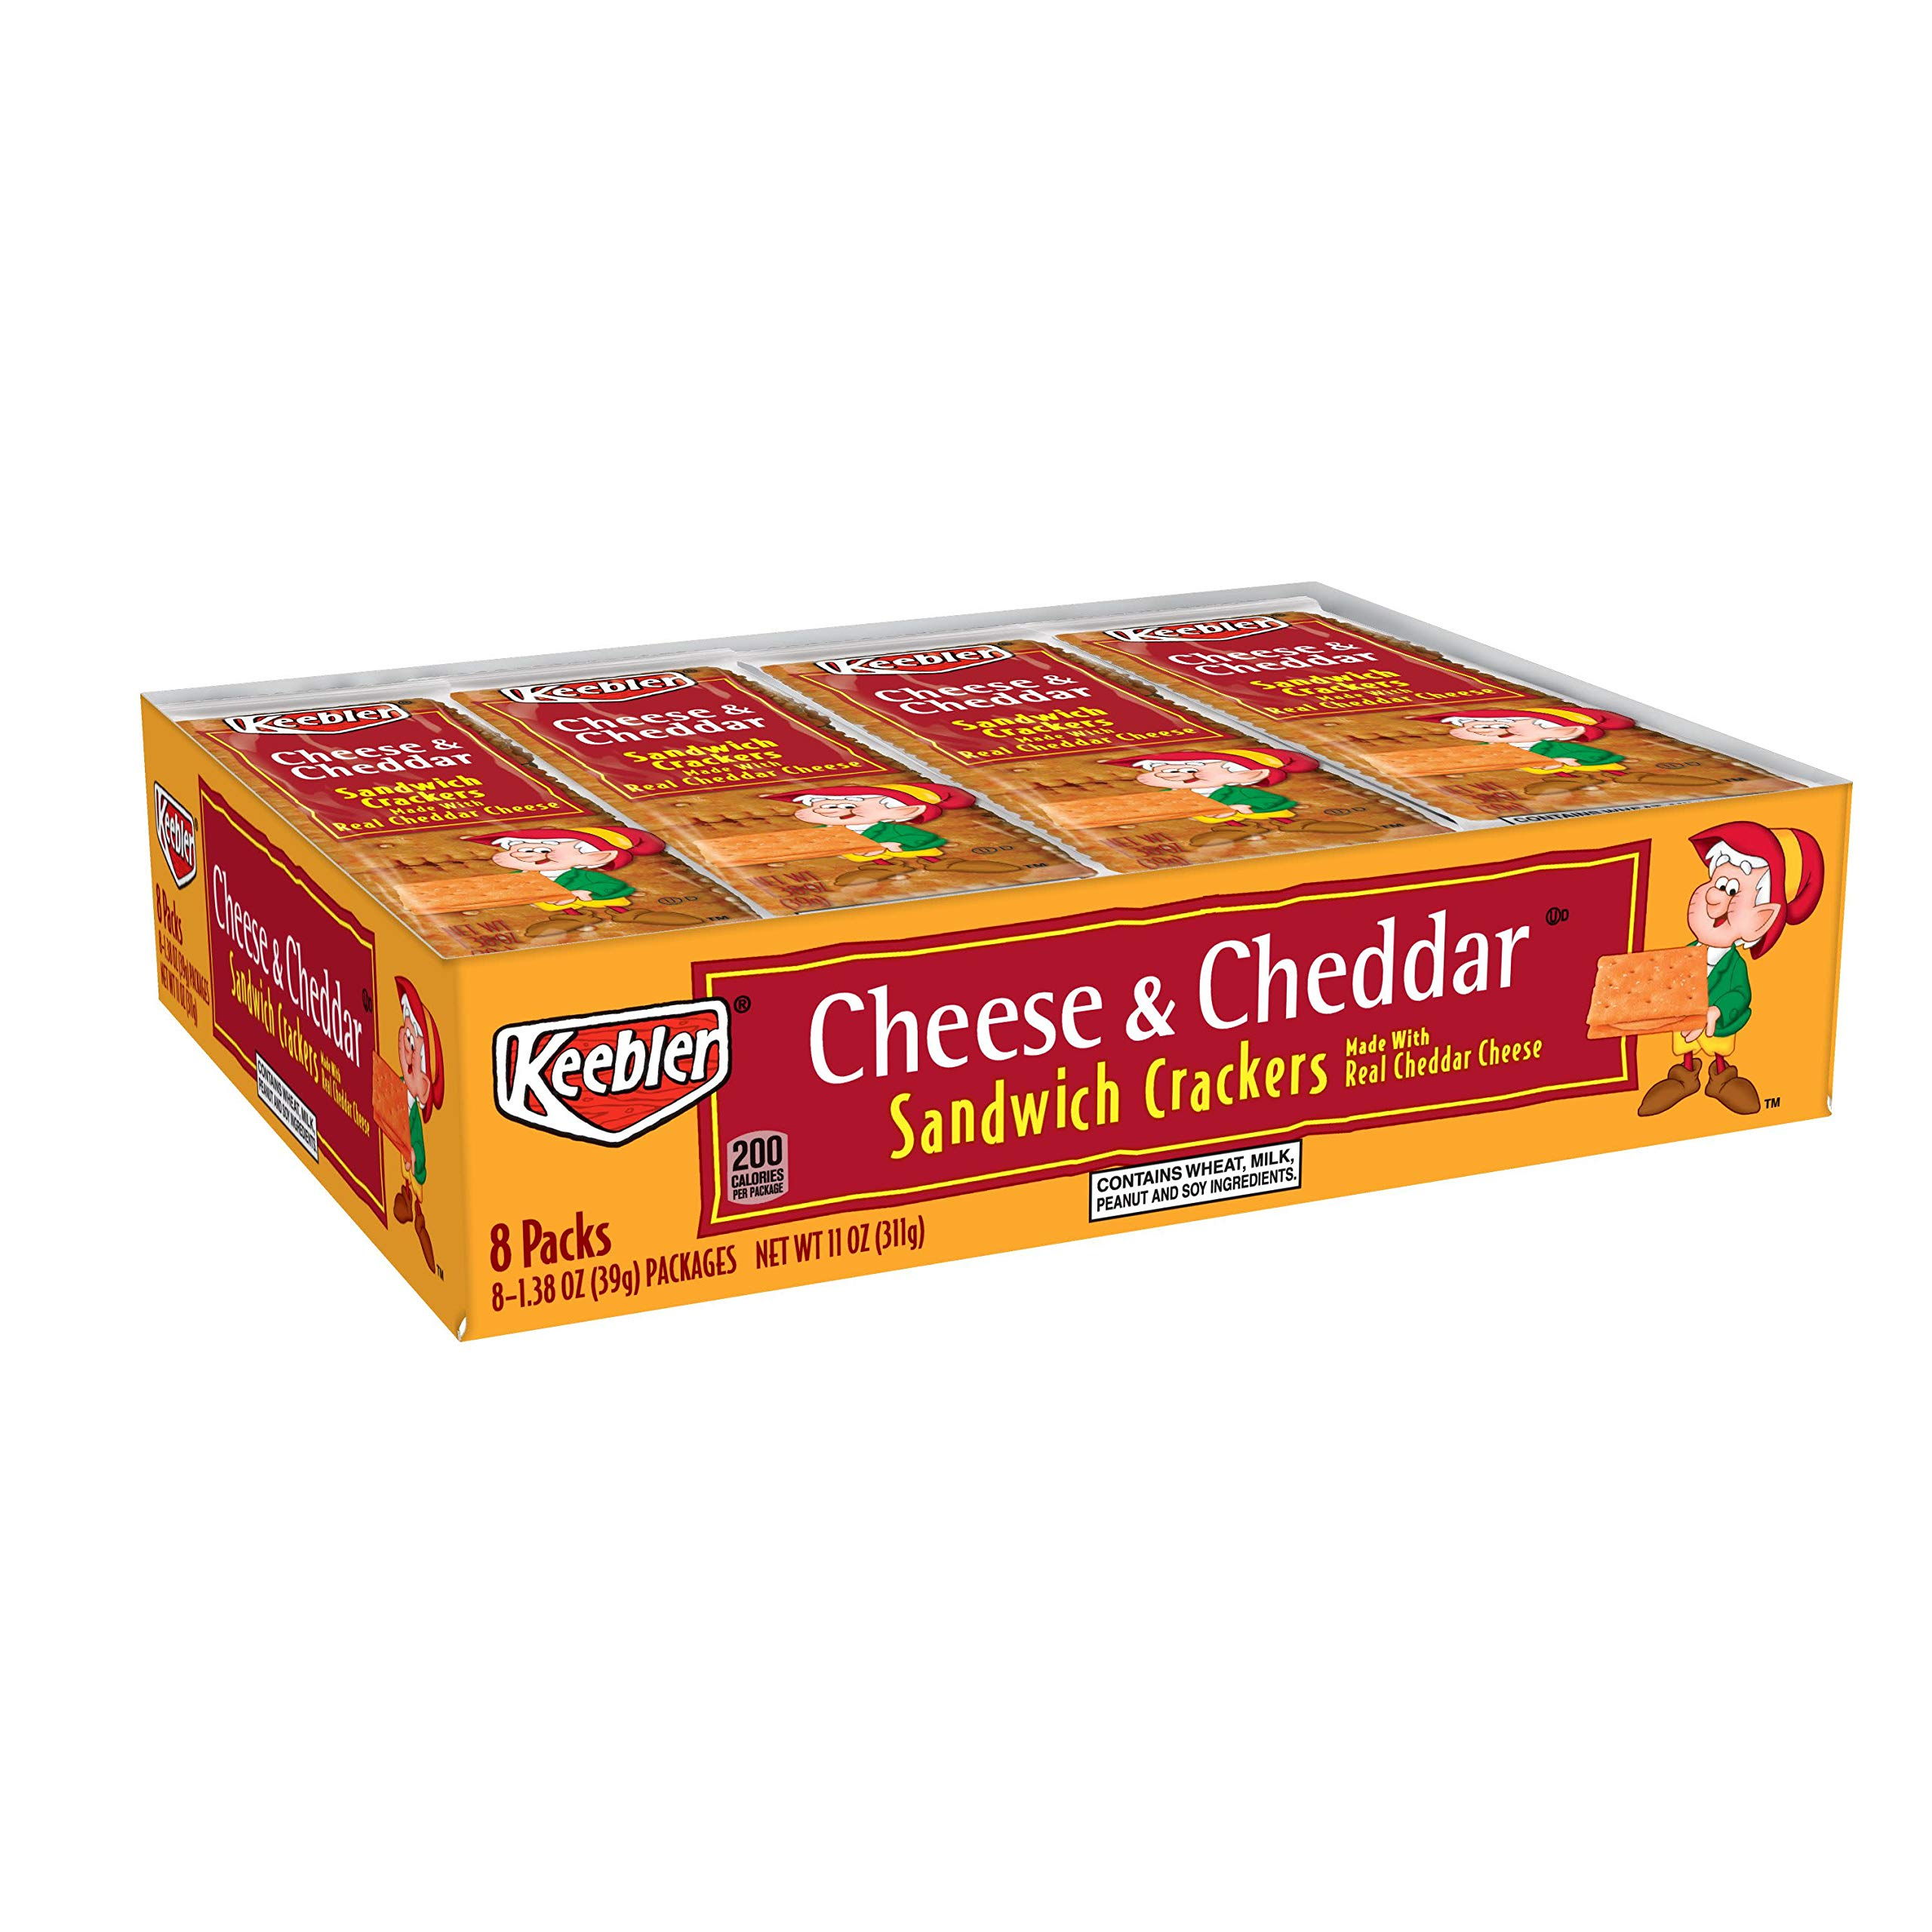 Keebler Cheese and Cheddar Sandwich Crackers, Single Serve, 1.38 oz Packages, 8 Count(Pack of 6) by Keebler